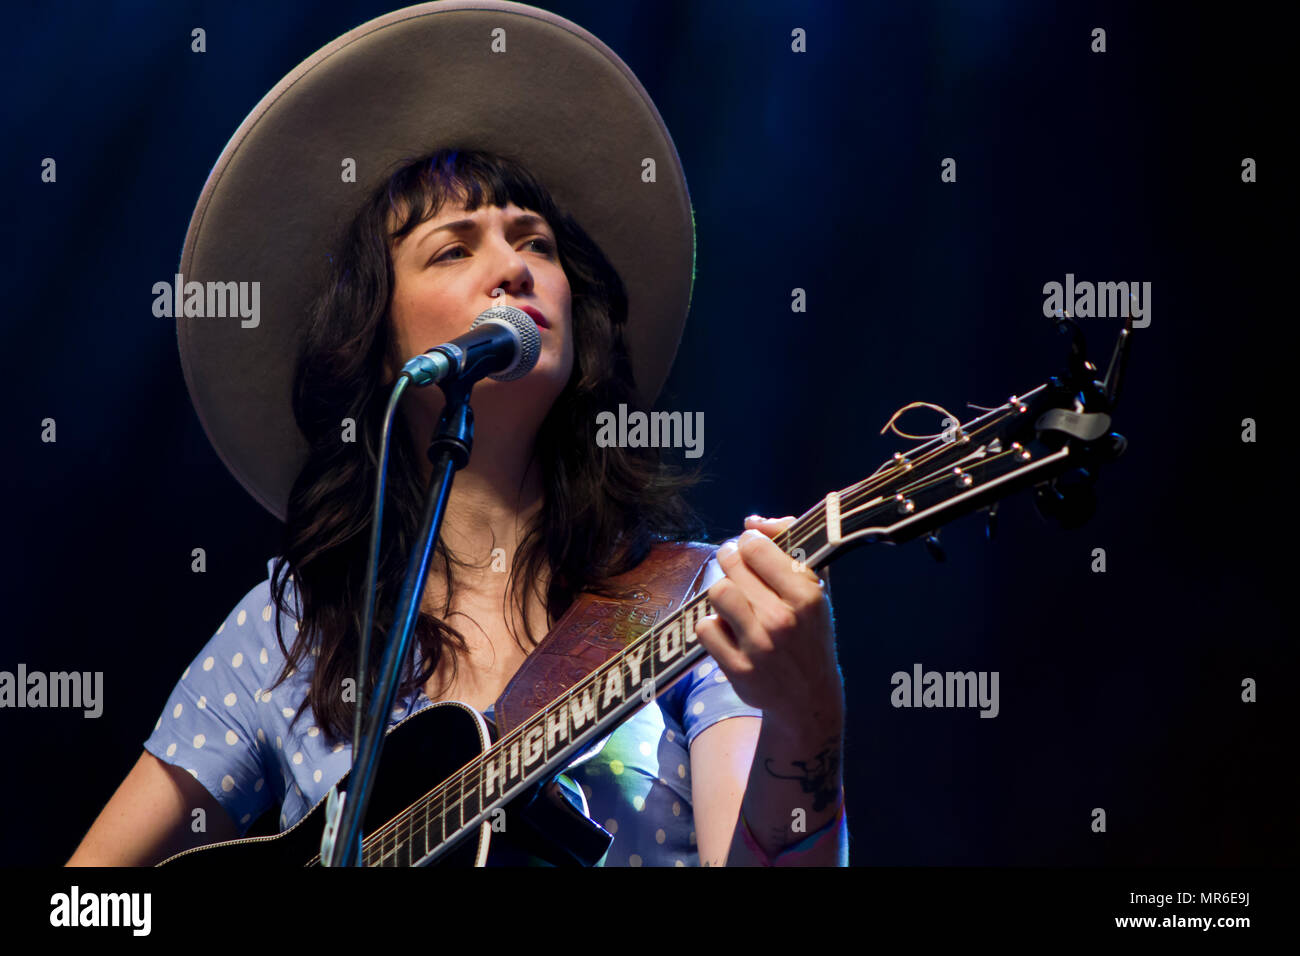 Nikki Lane performs in live concert - Stock Image